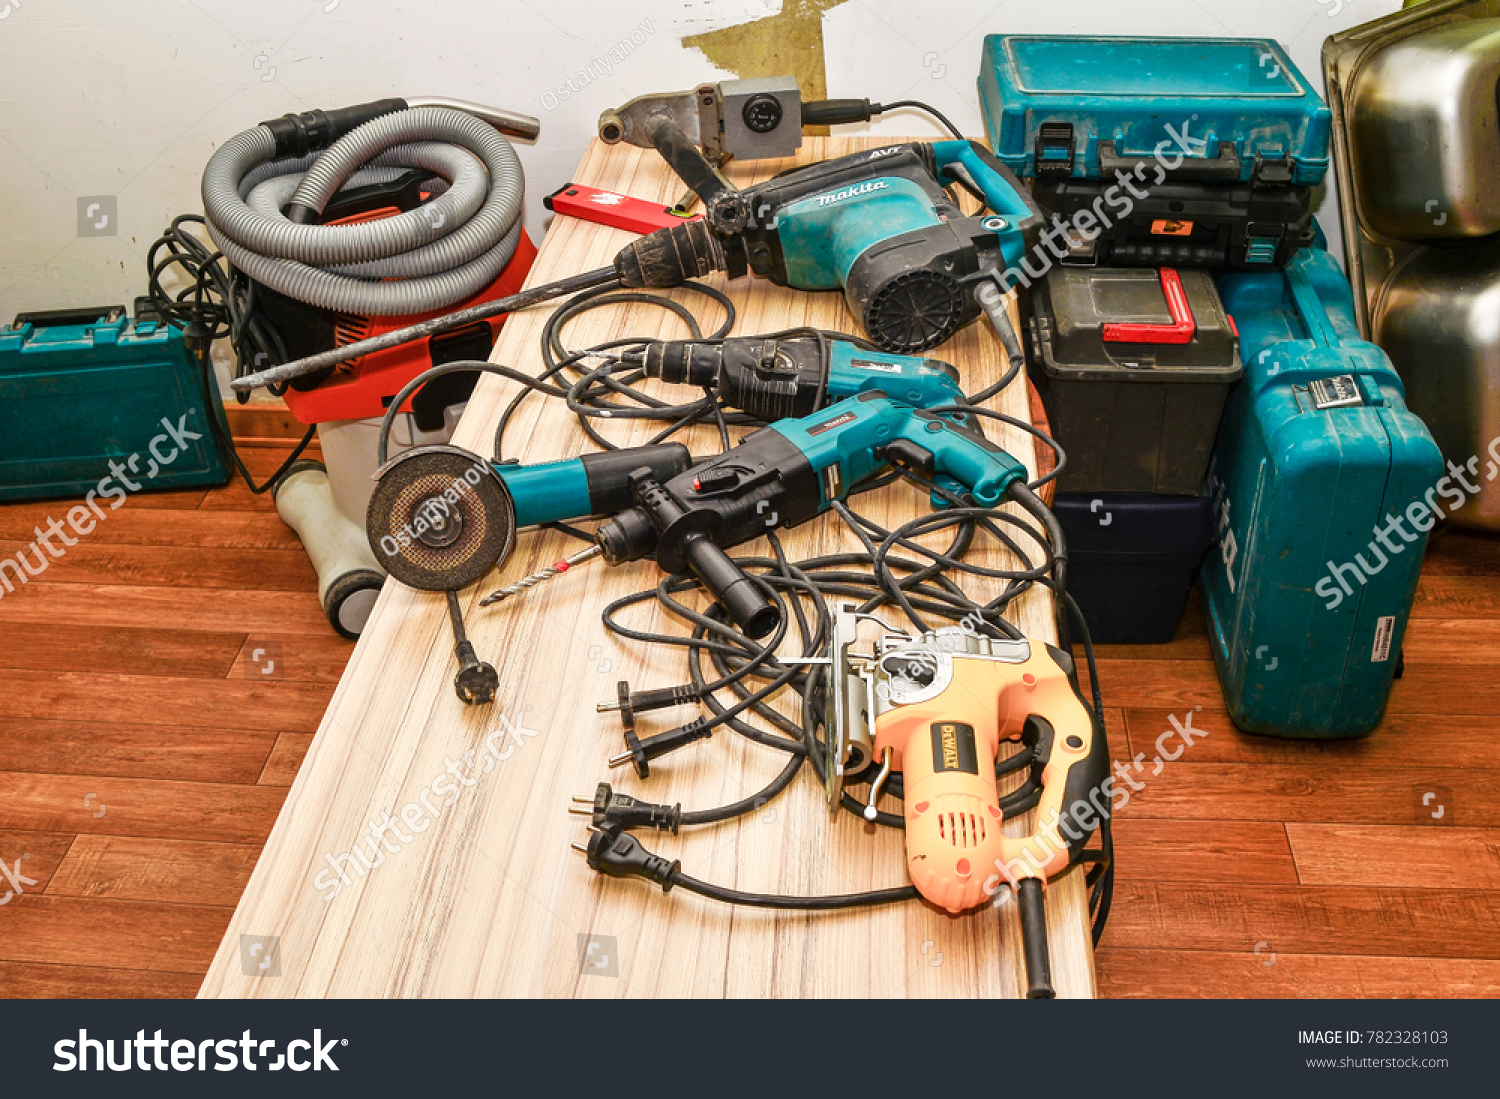 Range Power Tools Brands Makita Dewalt Stock Photo Edit Now House Wiring The Of In To Prepare For